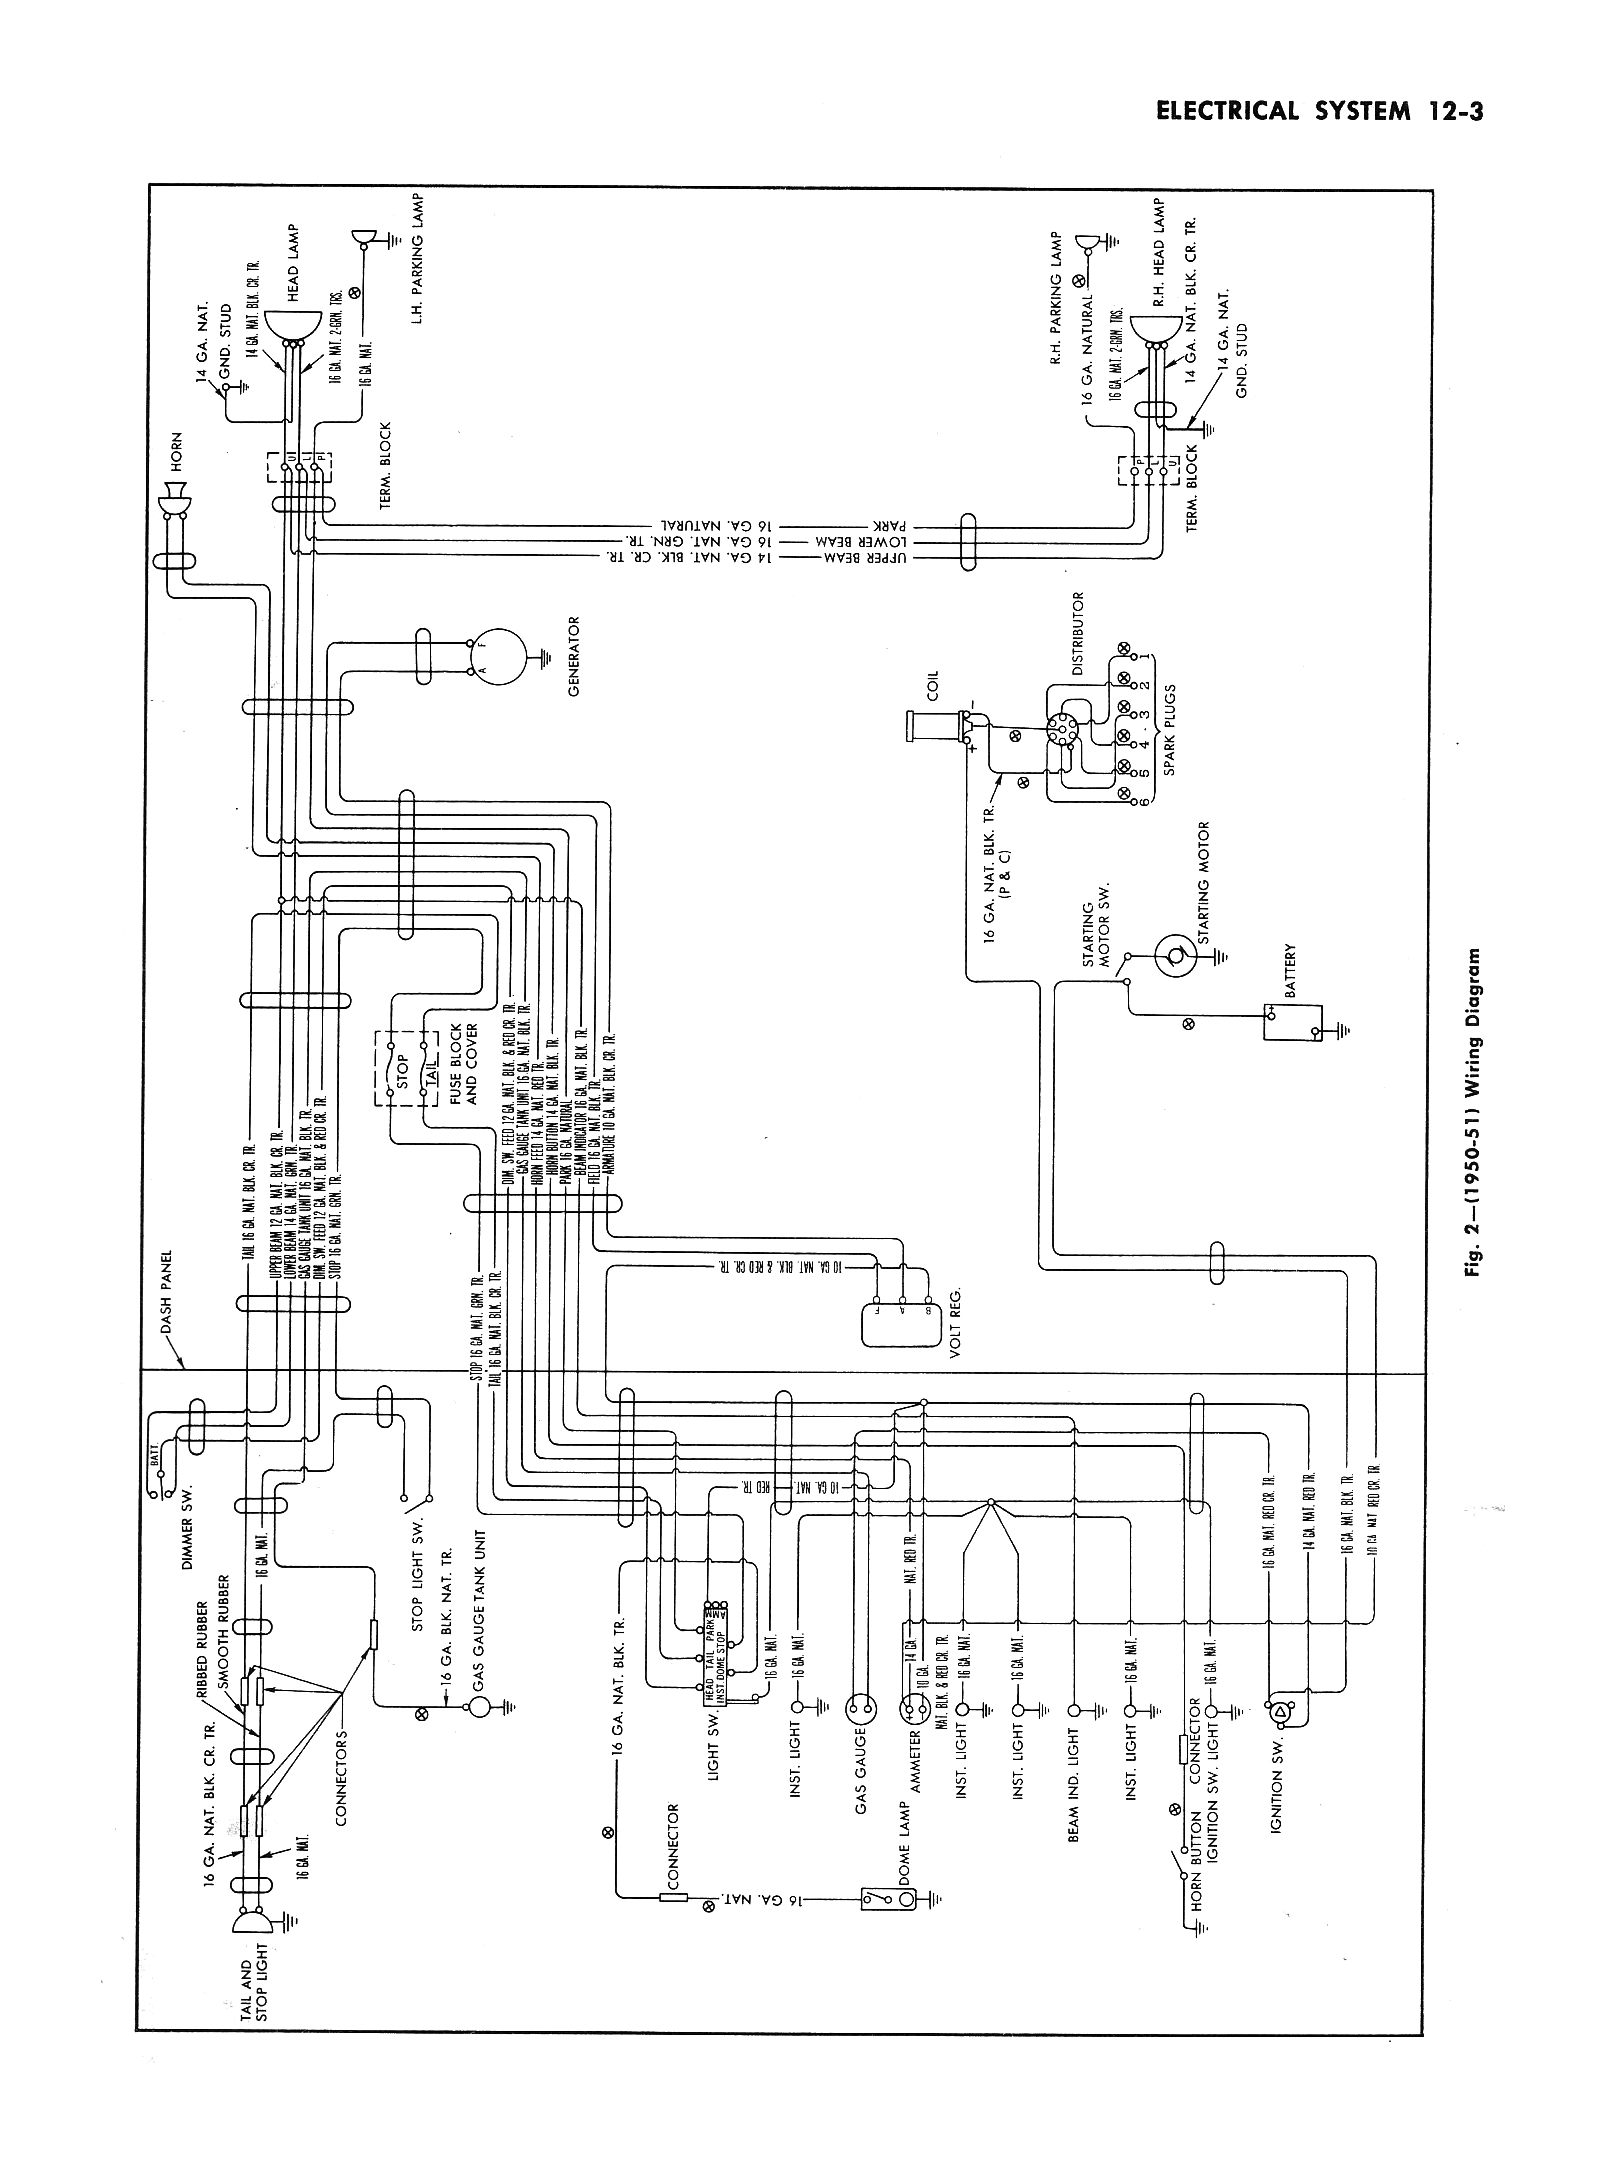 hight resolution of 1942 chevy wiring diagram wiring diagram dat 1942 oldsmobile wiring diagram